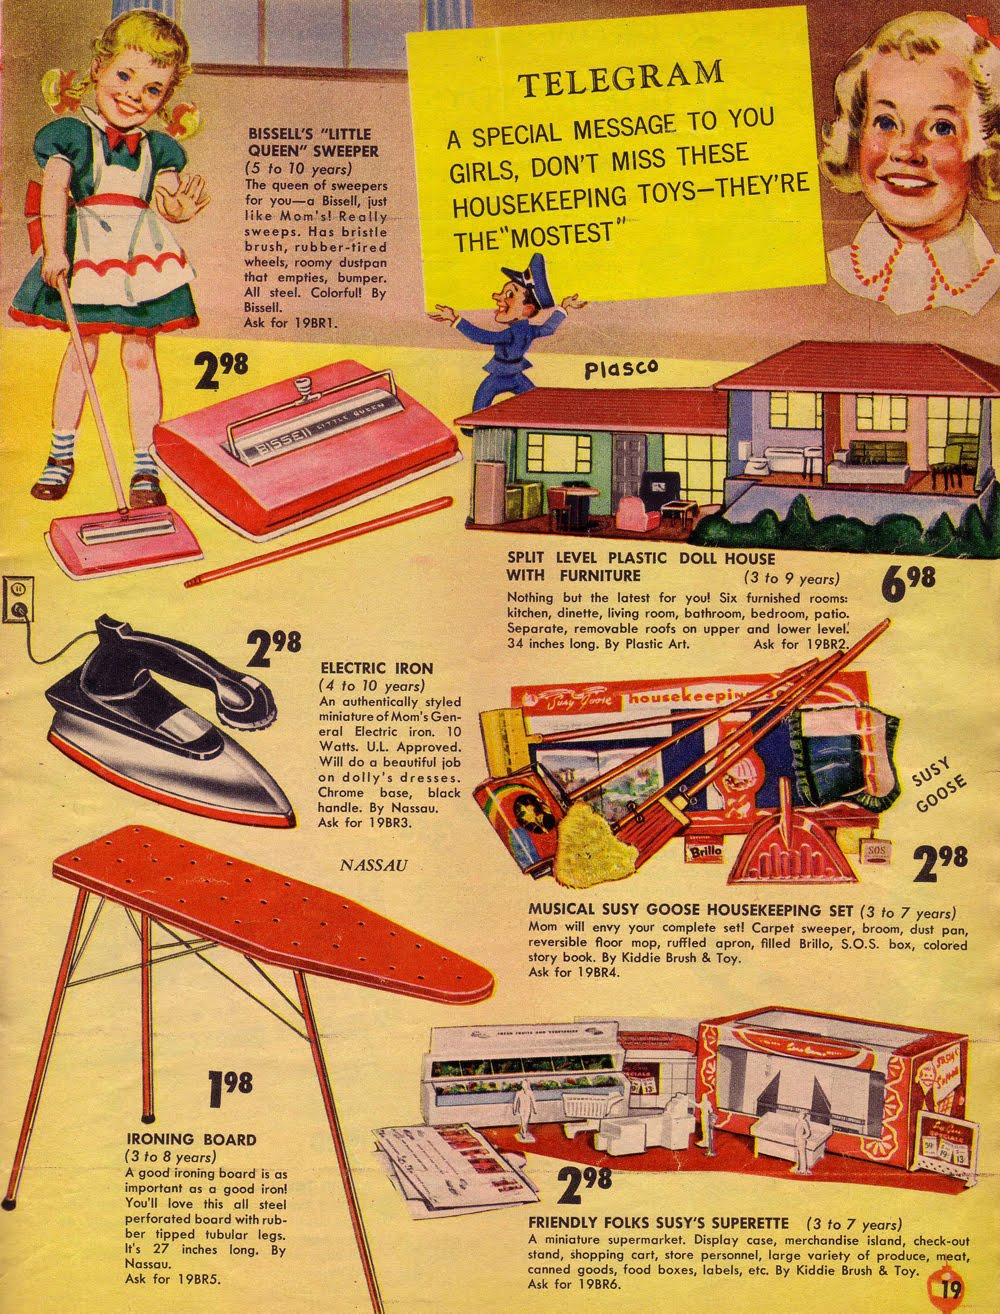 Toys For Girls In 1950 : S toys imgkid the image kid has it